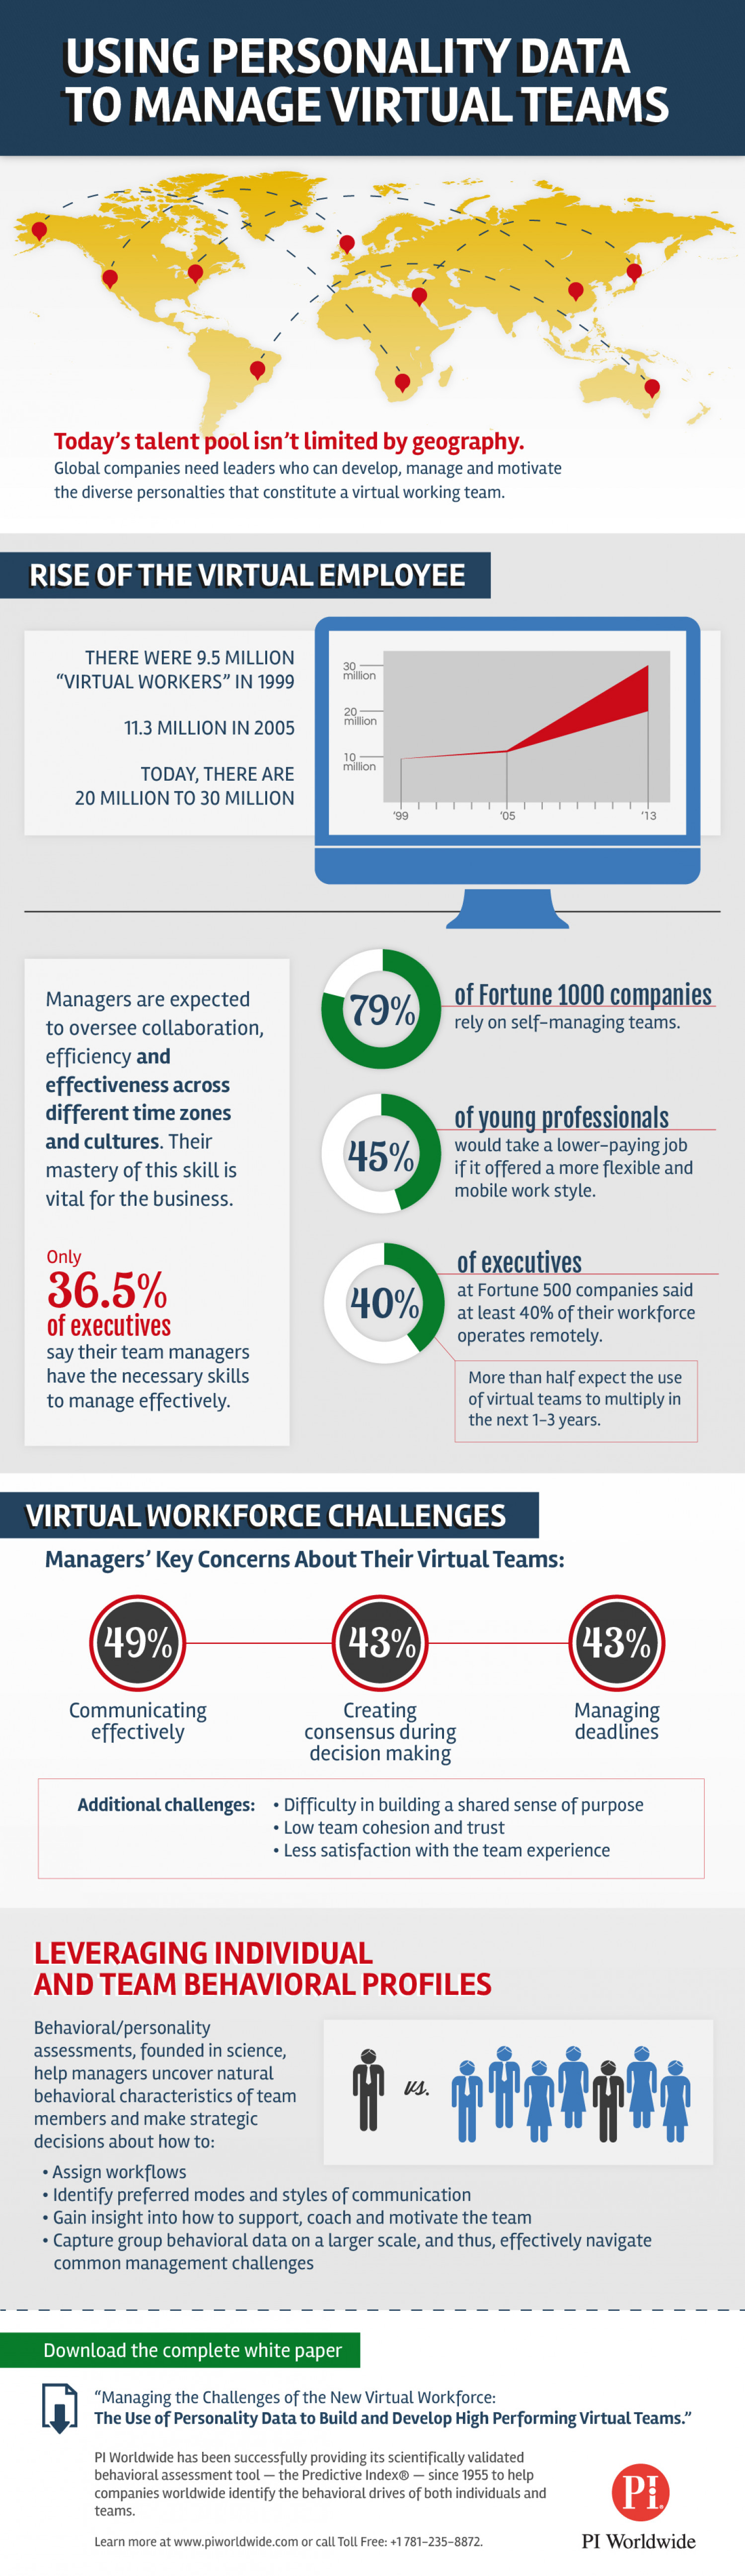 Managing A Virtual Workforce Infographic